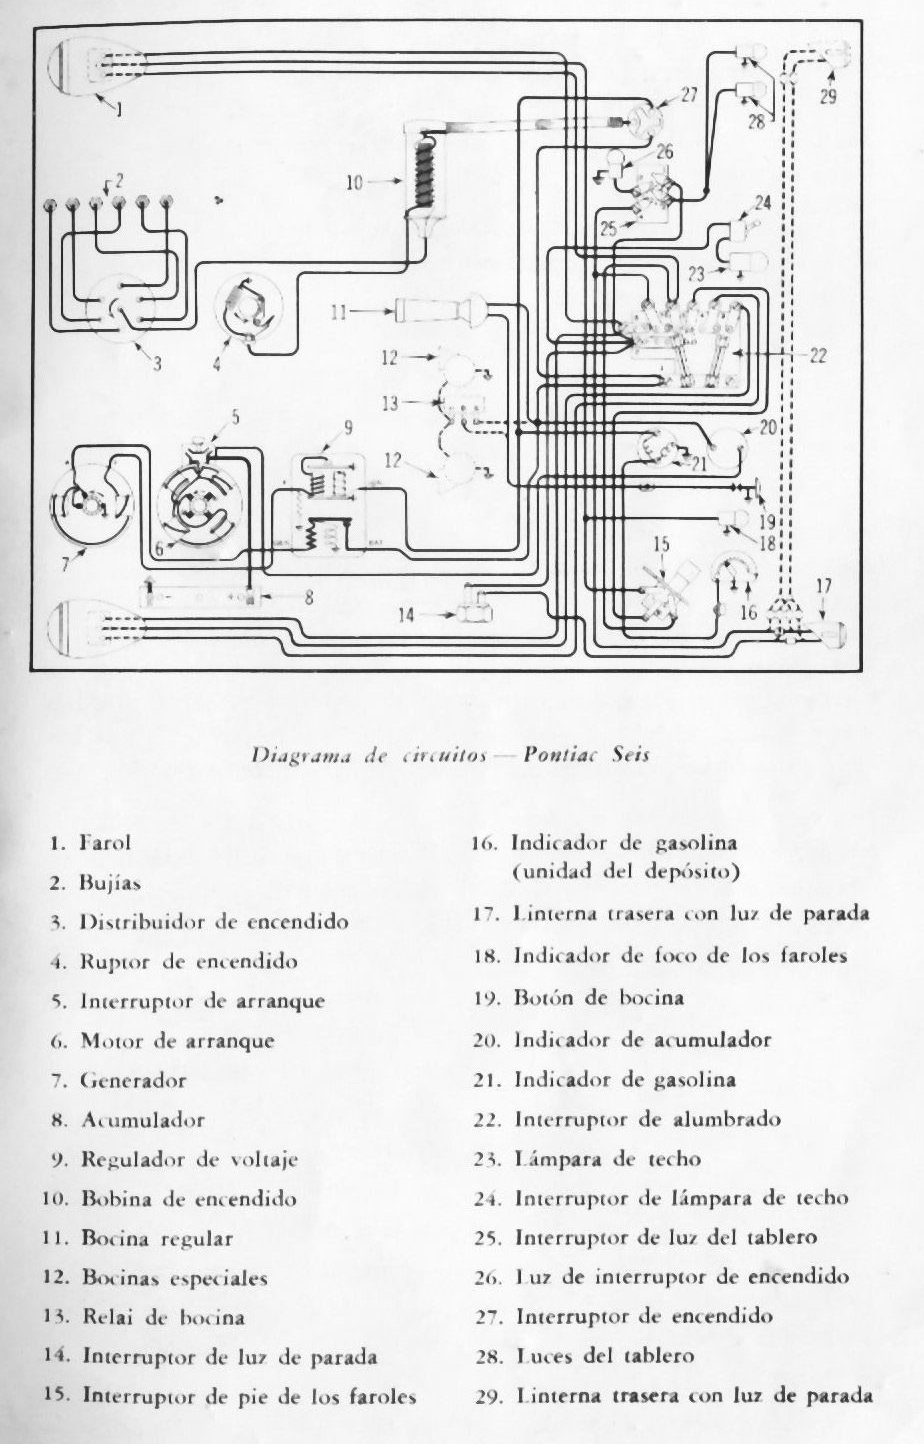 1968 Mg Midget Wiring Diagram Electrical Diagrams 1973 Trusted Pontiac Fiero 1938